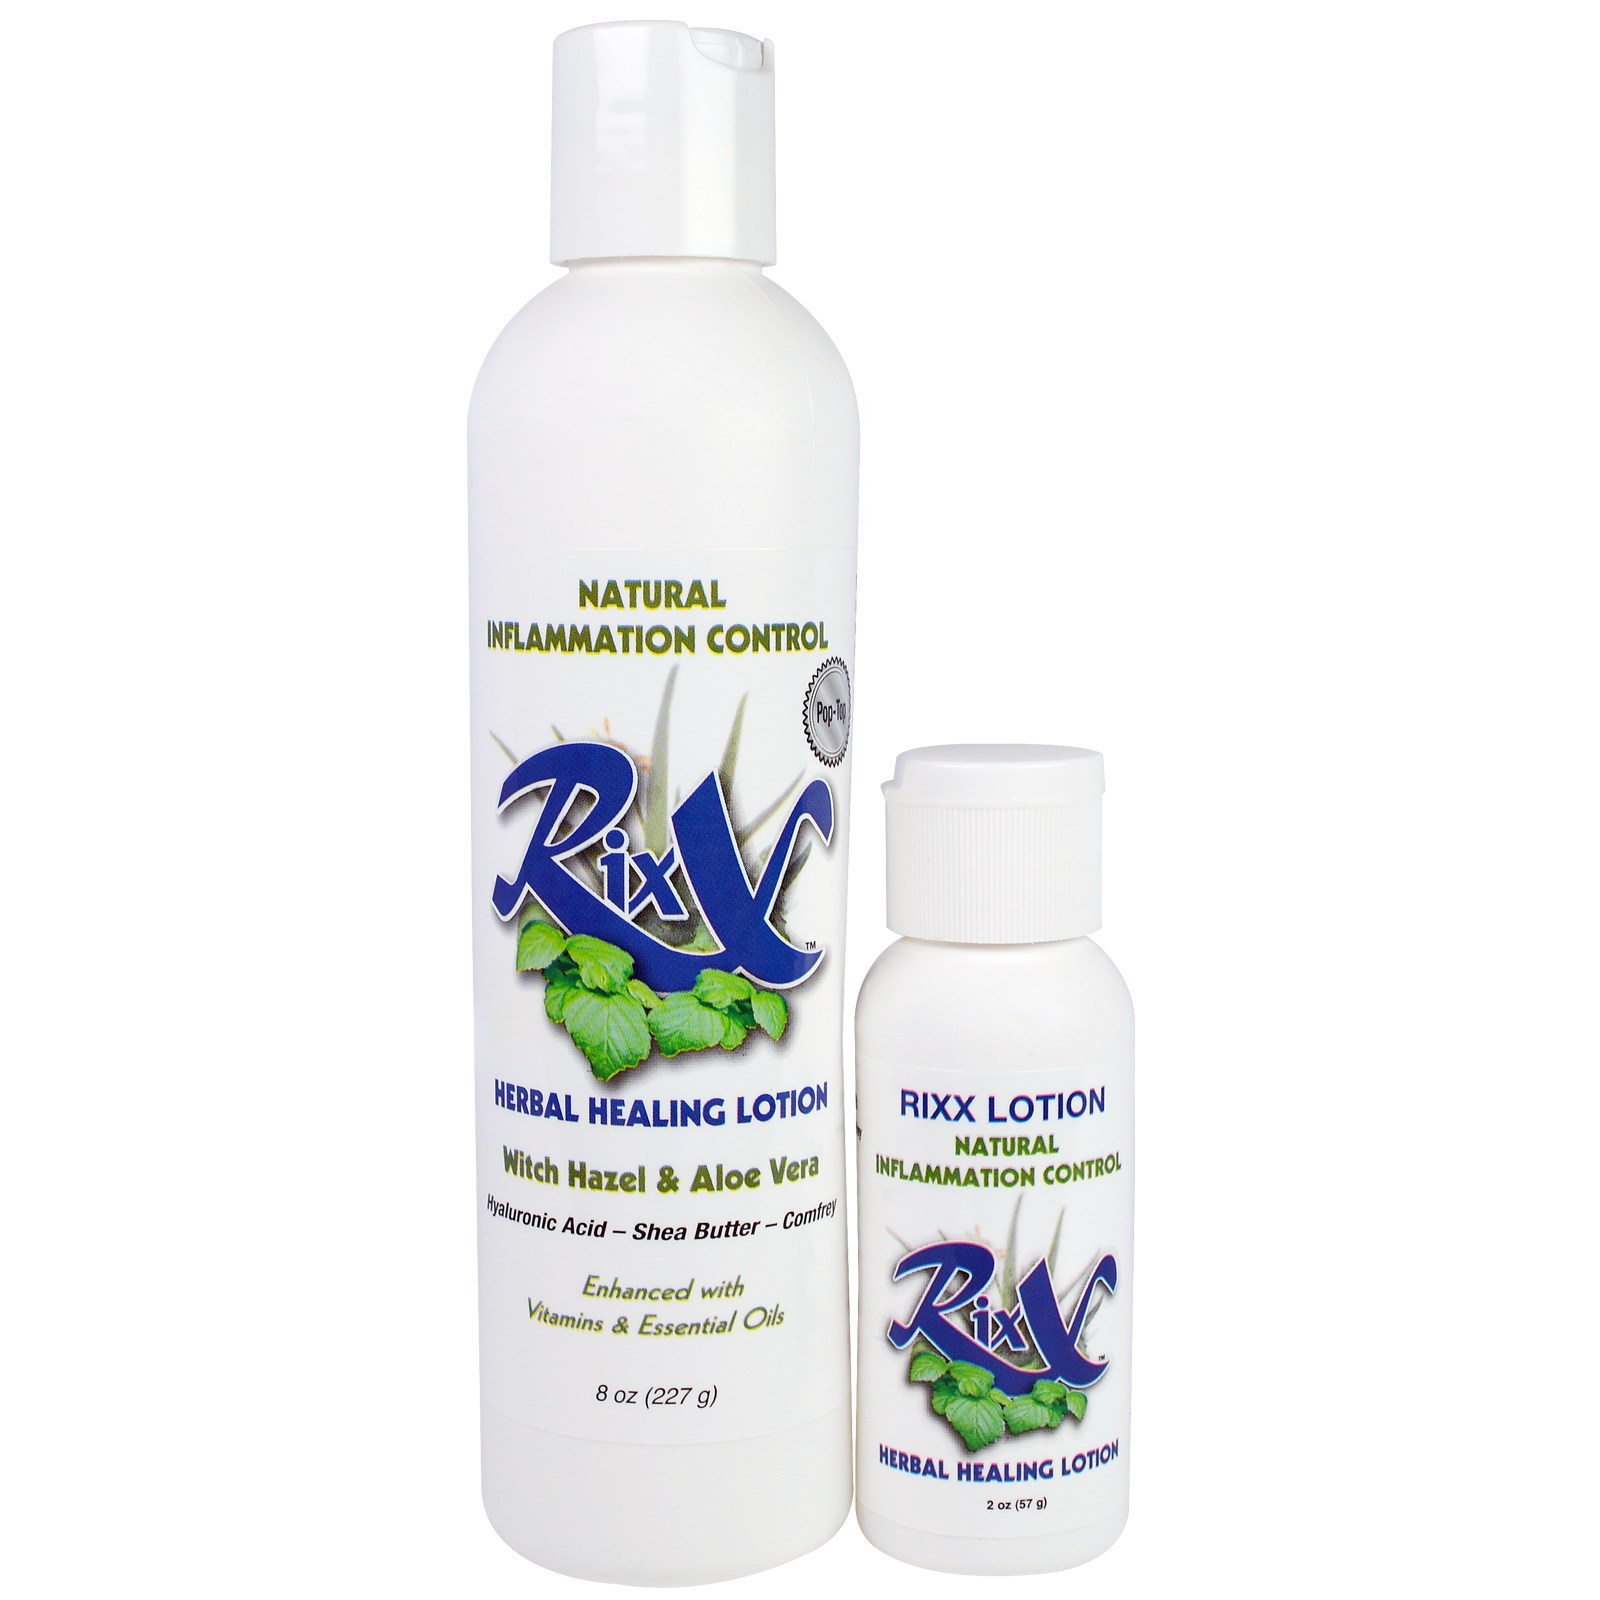 Rixx, Herbal Healing Lotion, Combo Pack, 8 oz (227 g) & 2 oz (57 g)